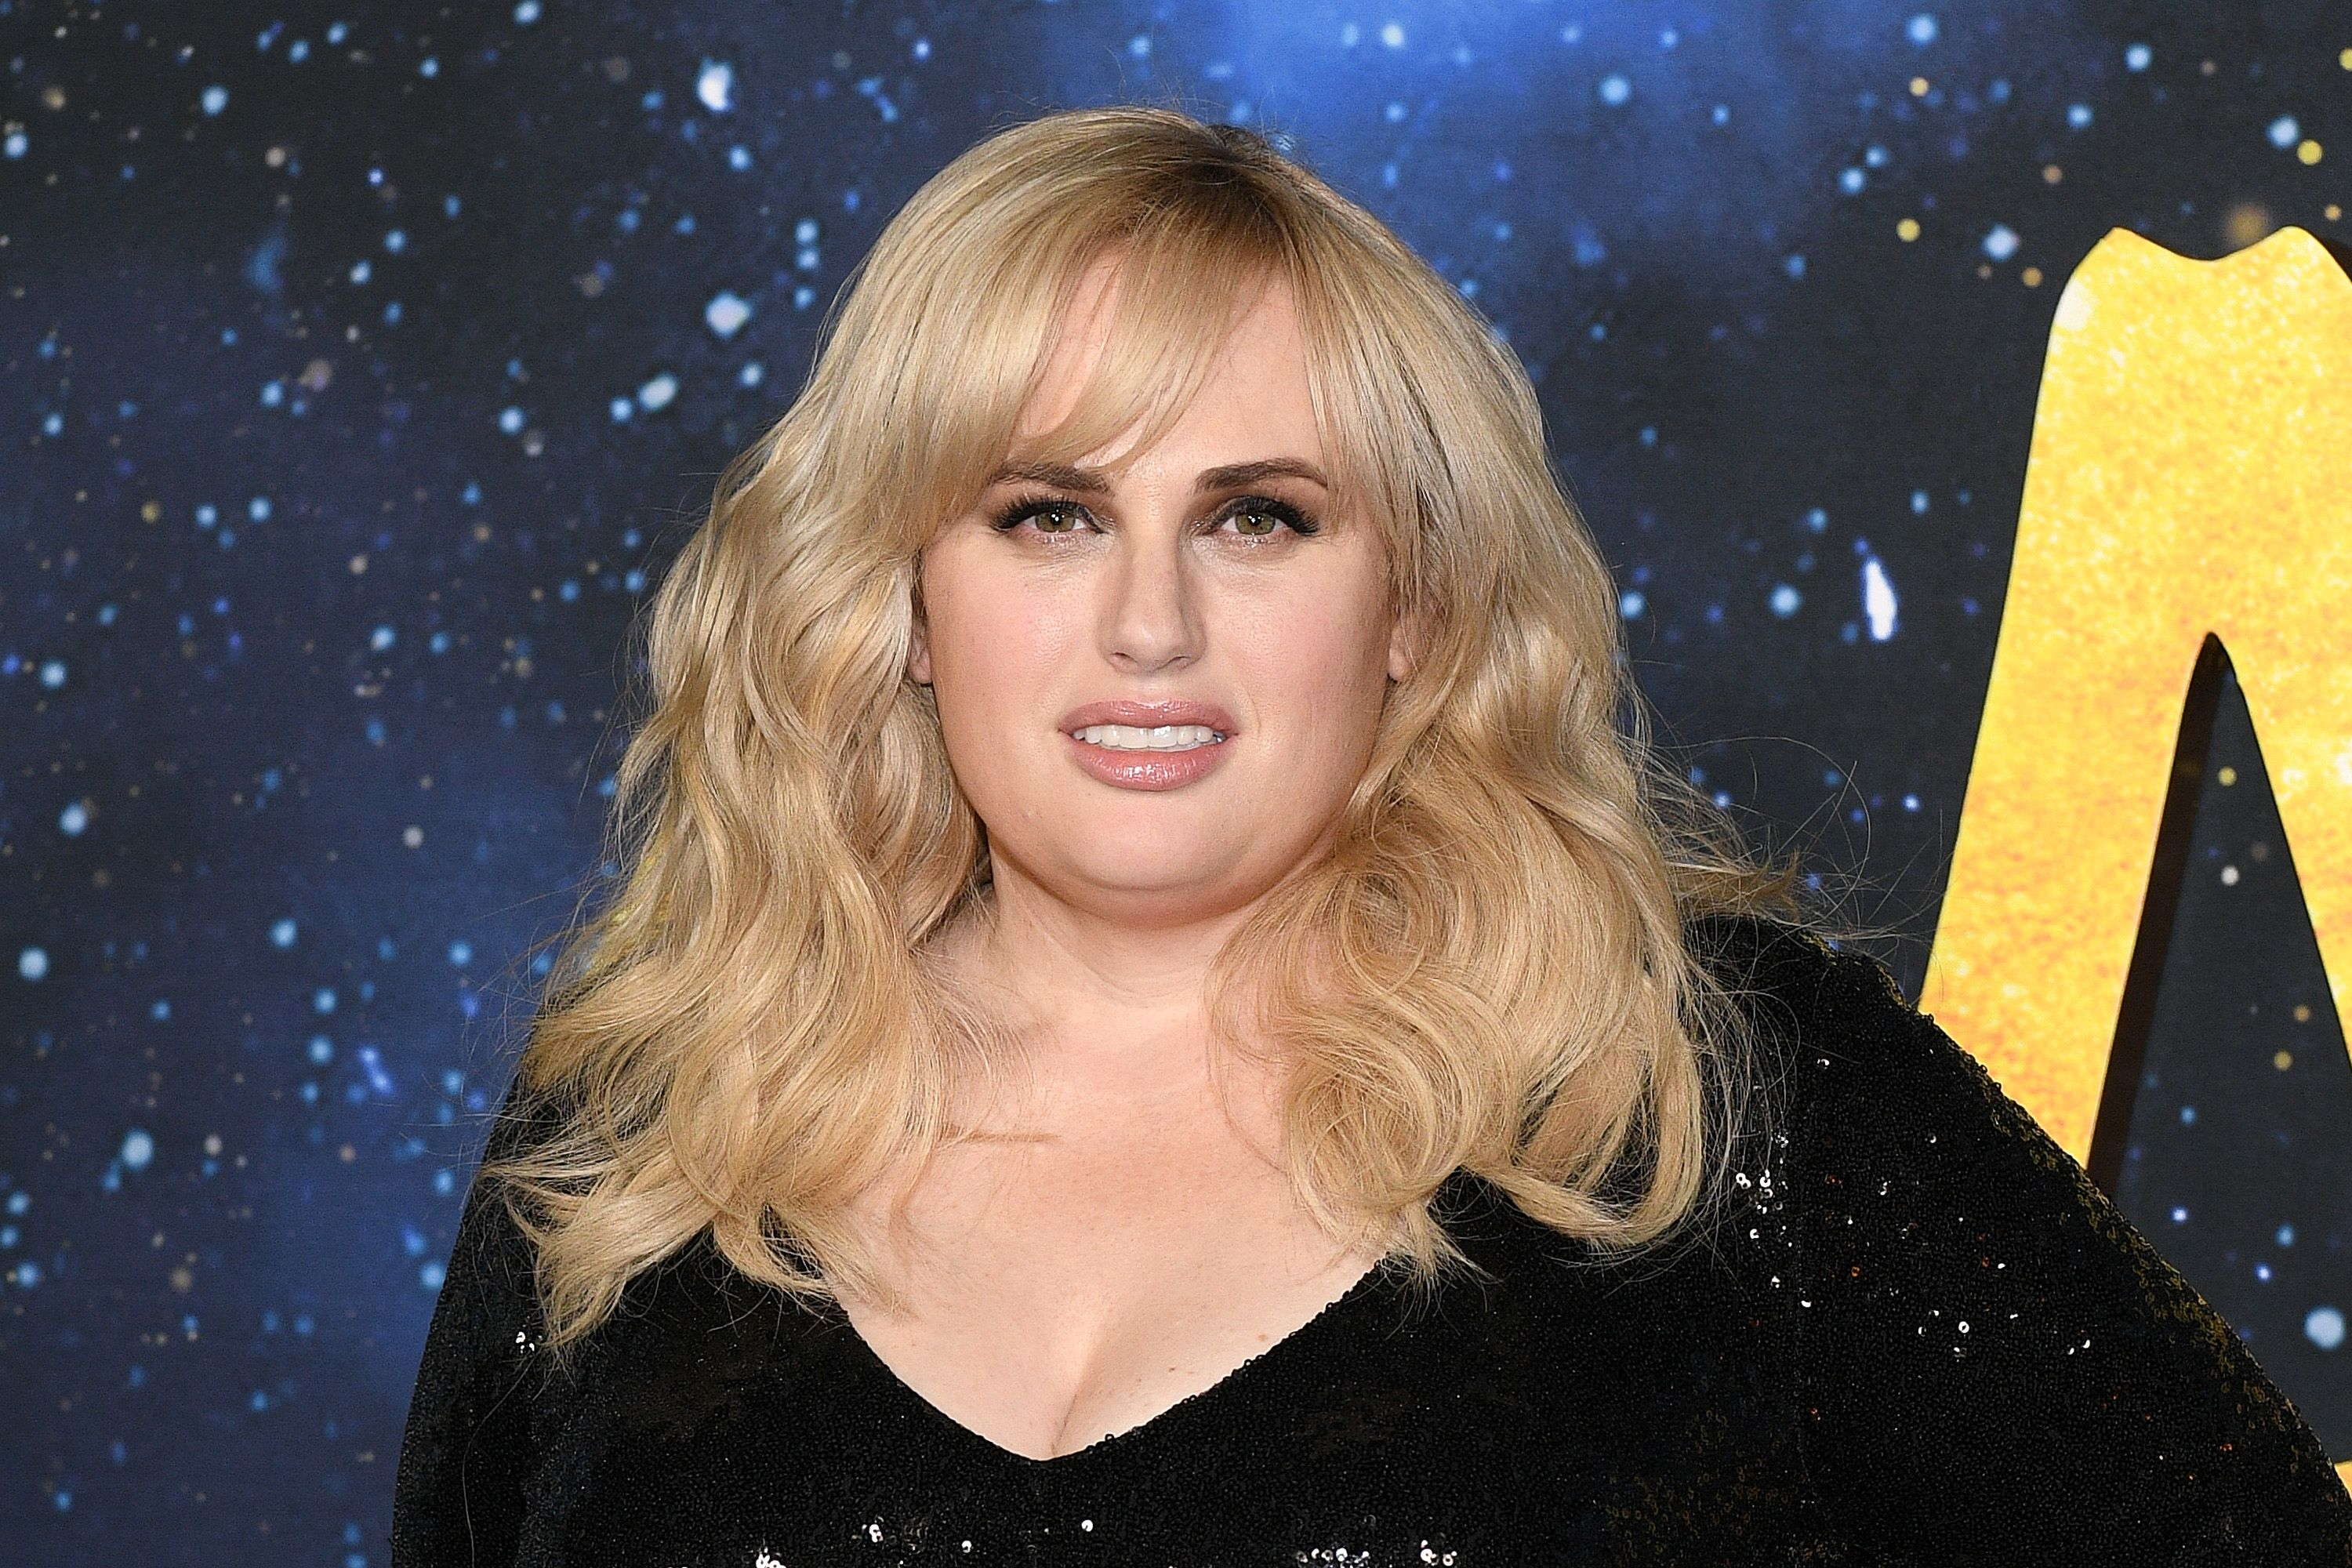 Rebel Wilson Reveals Her Weight Loss Transformation on Instagram